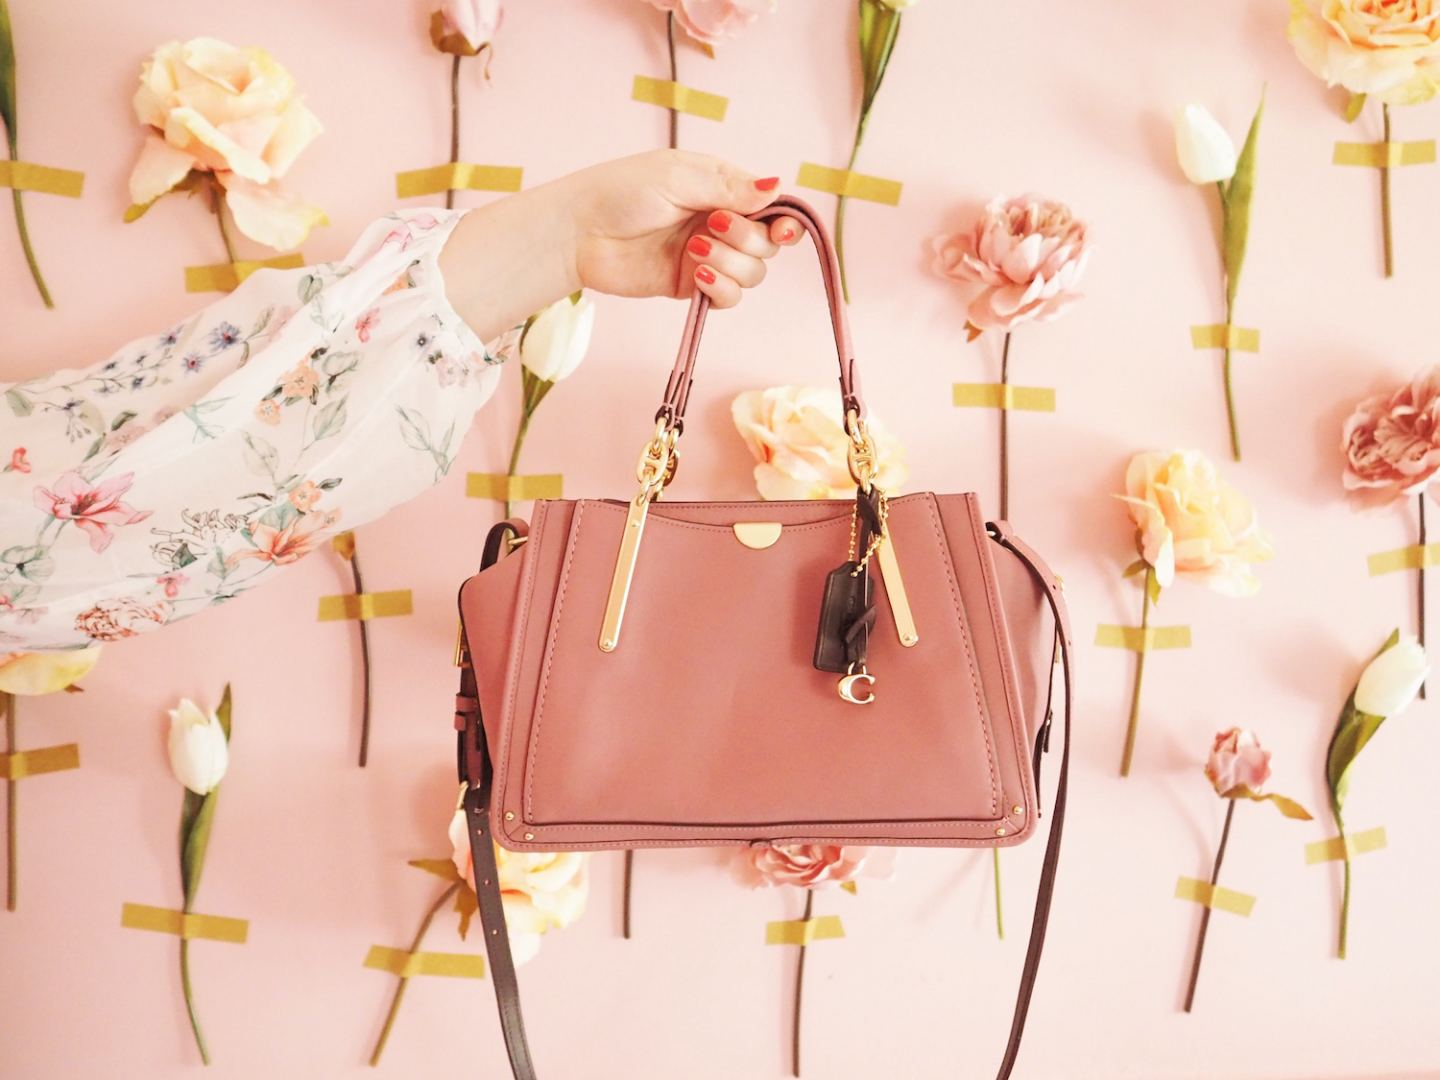 Let's Chat About The Coach Dreamer Handbag